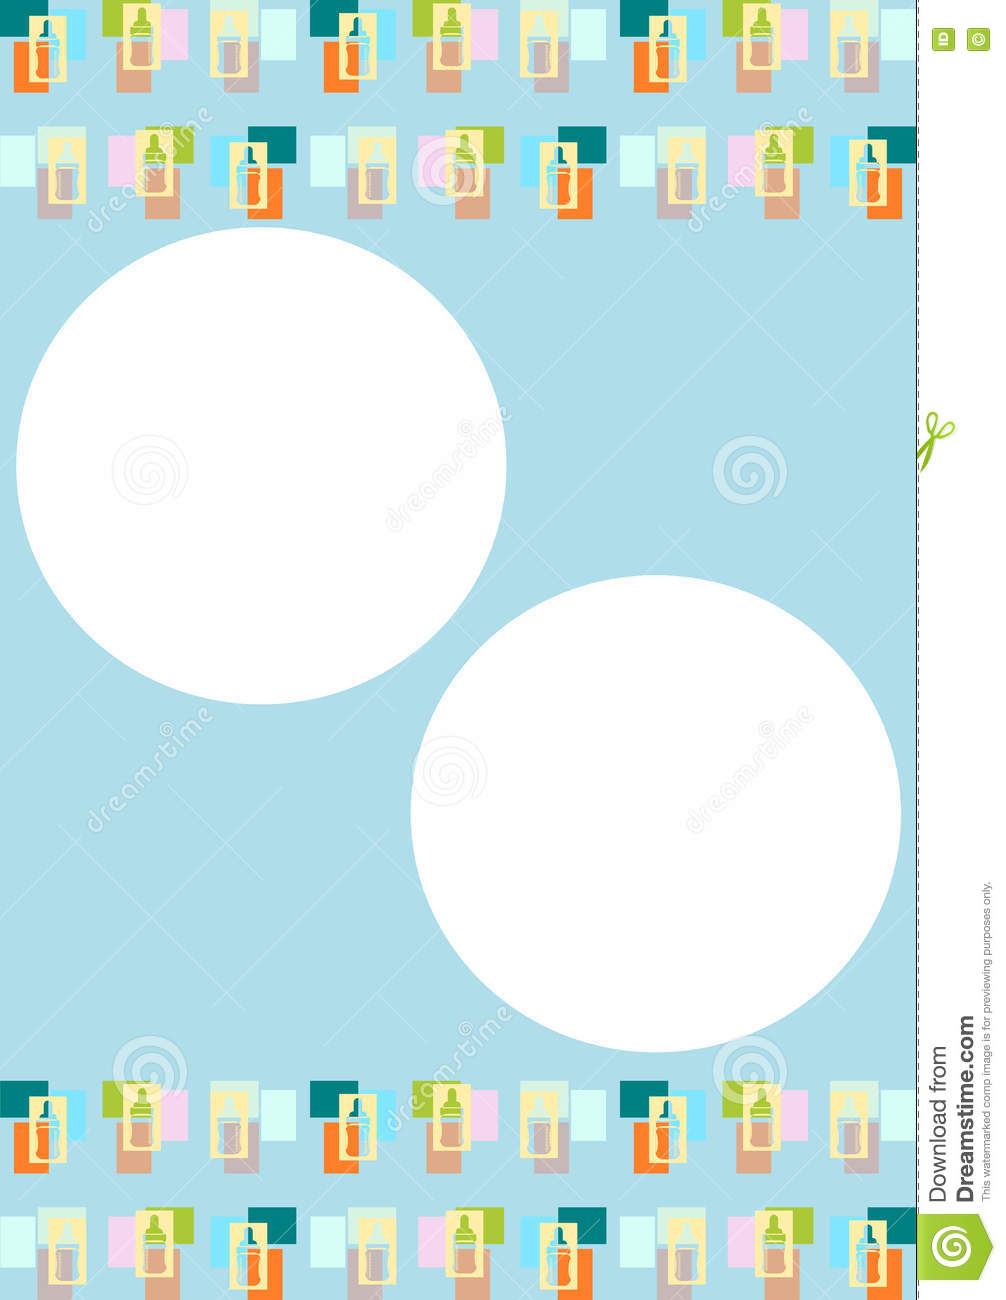 baby bottles template or background for infants or newborns stock